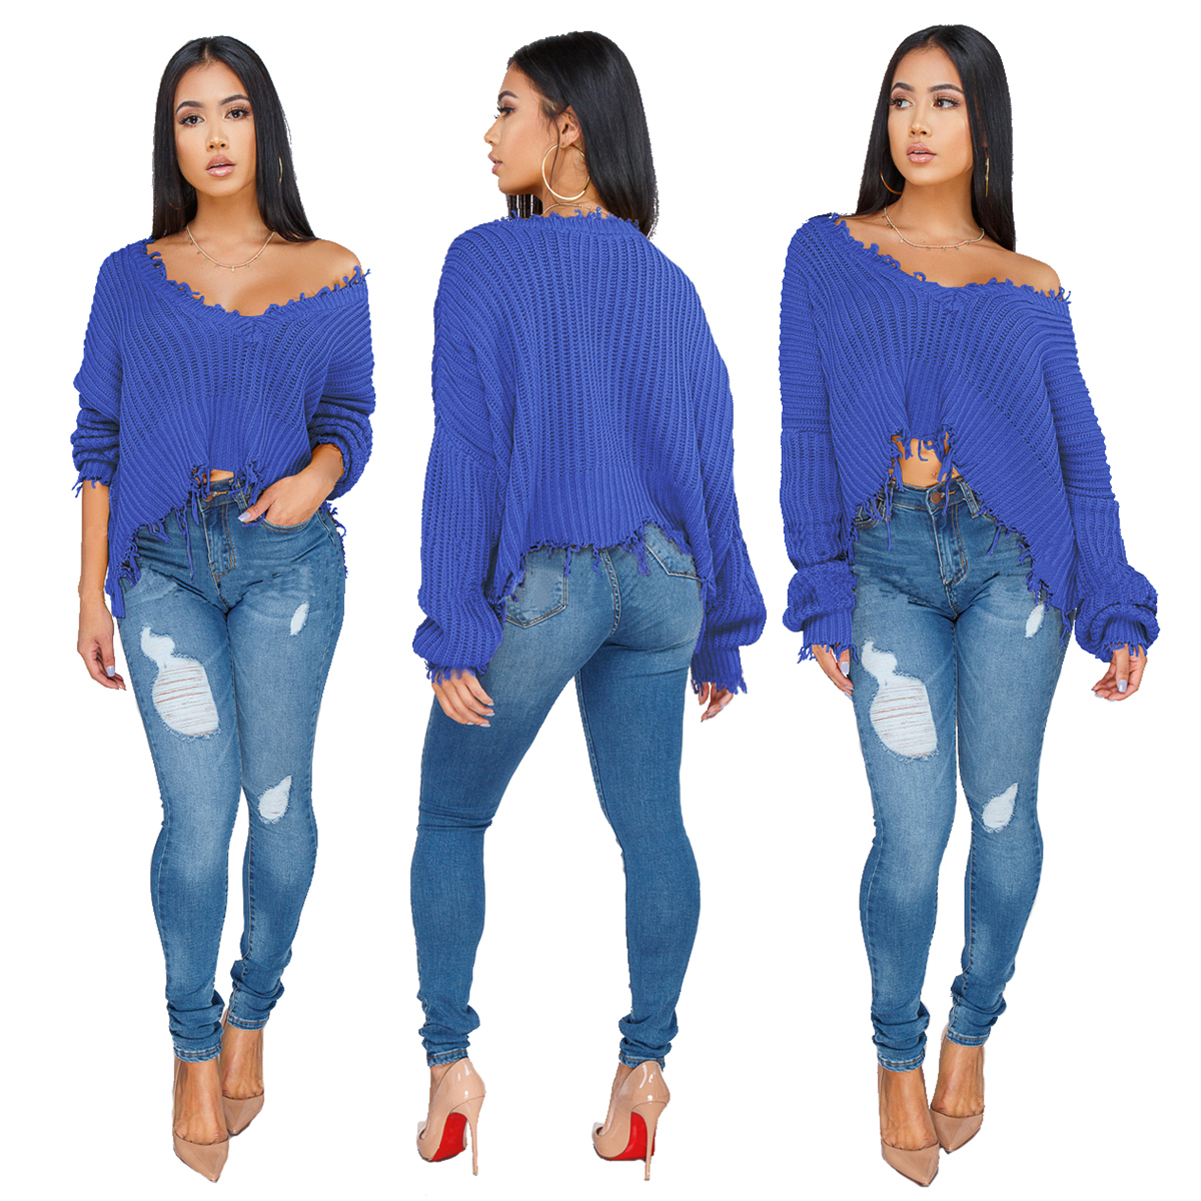 Z035 2019 irregular knit top style V neck  oversize loose women  crop sweaters